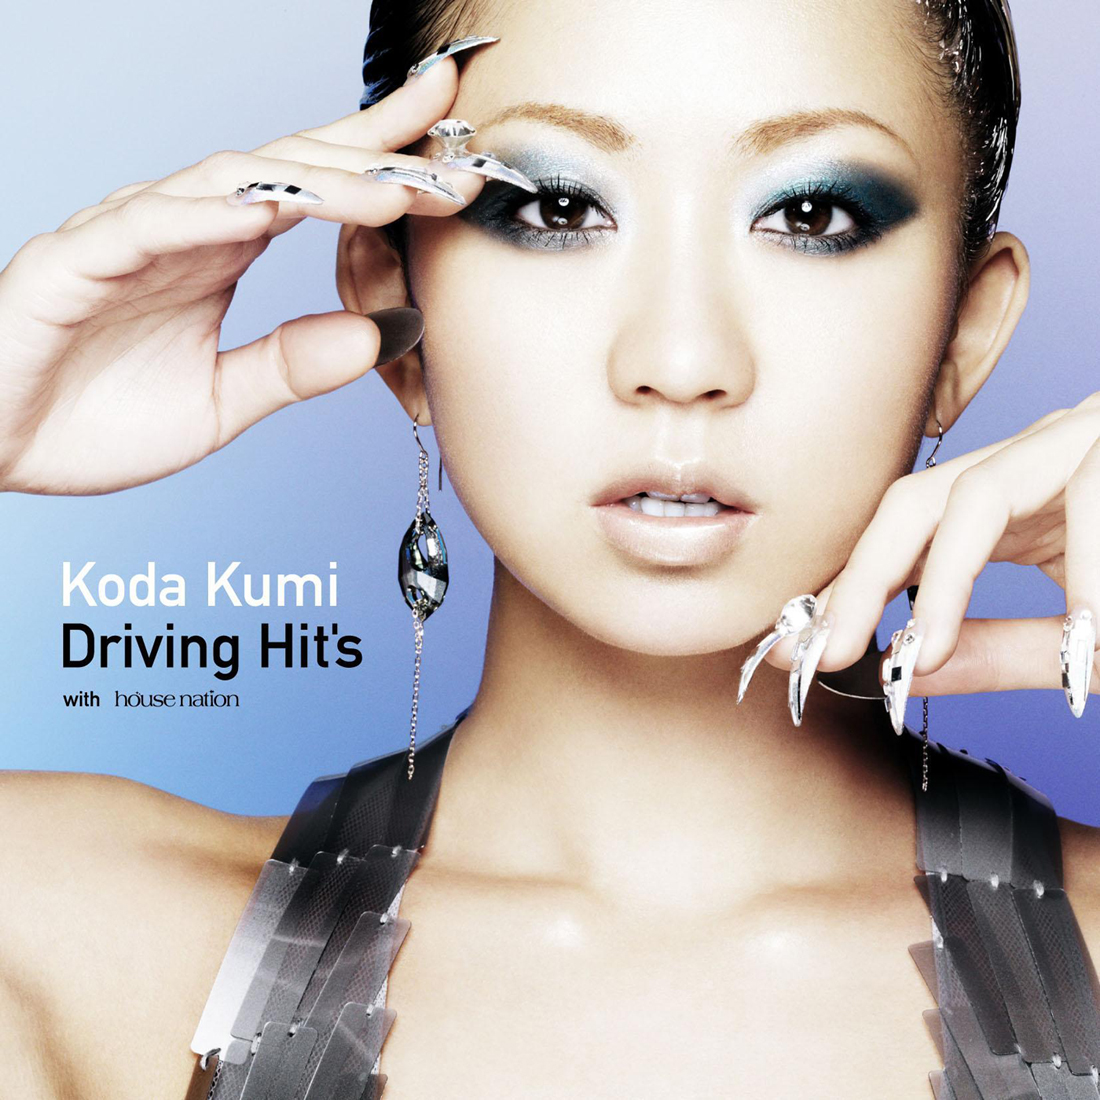 20180703.2356.07 Koda Kumi - Driving Hits cover.jpg